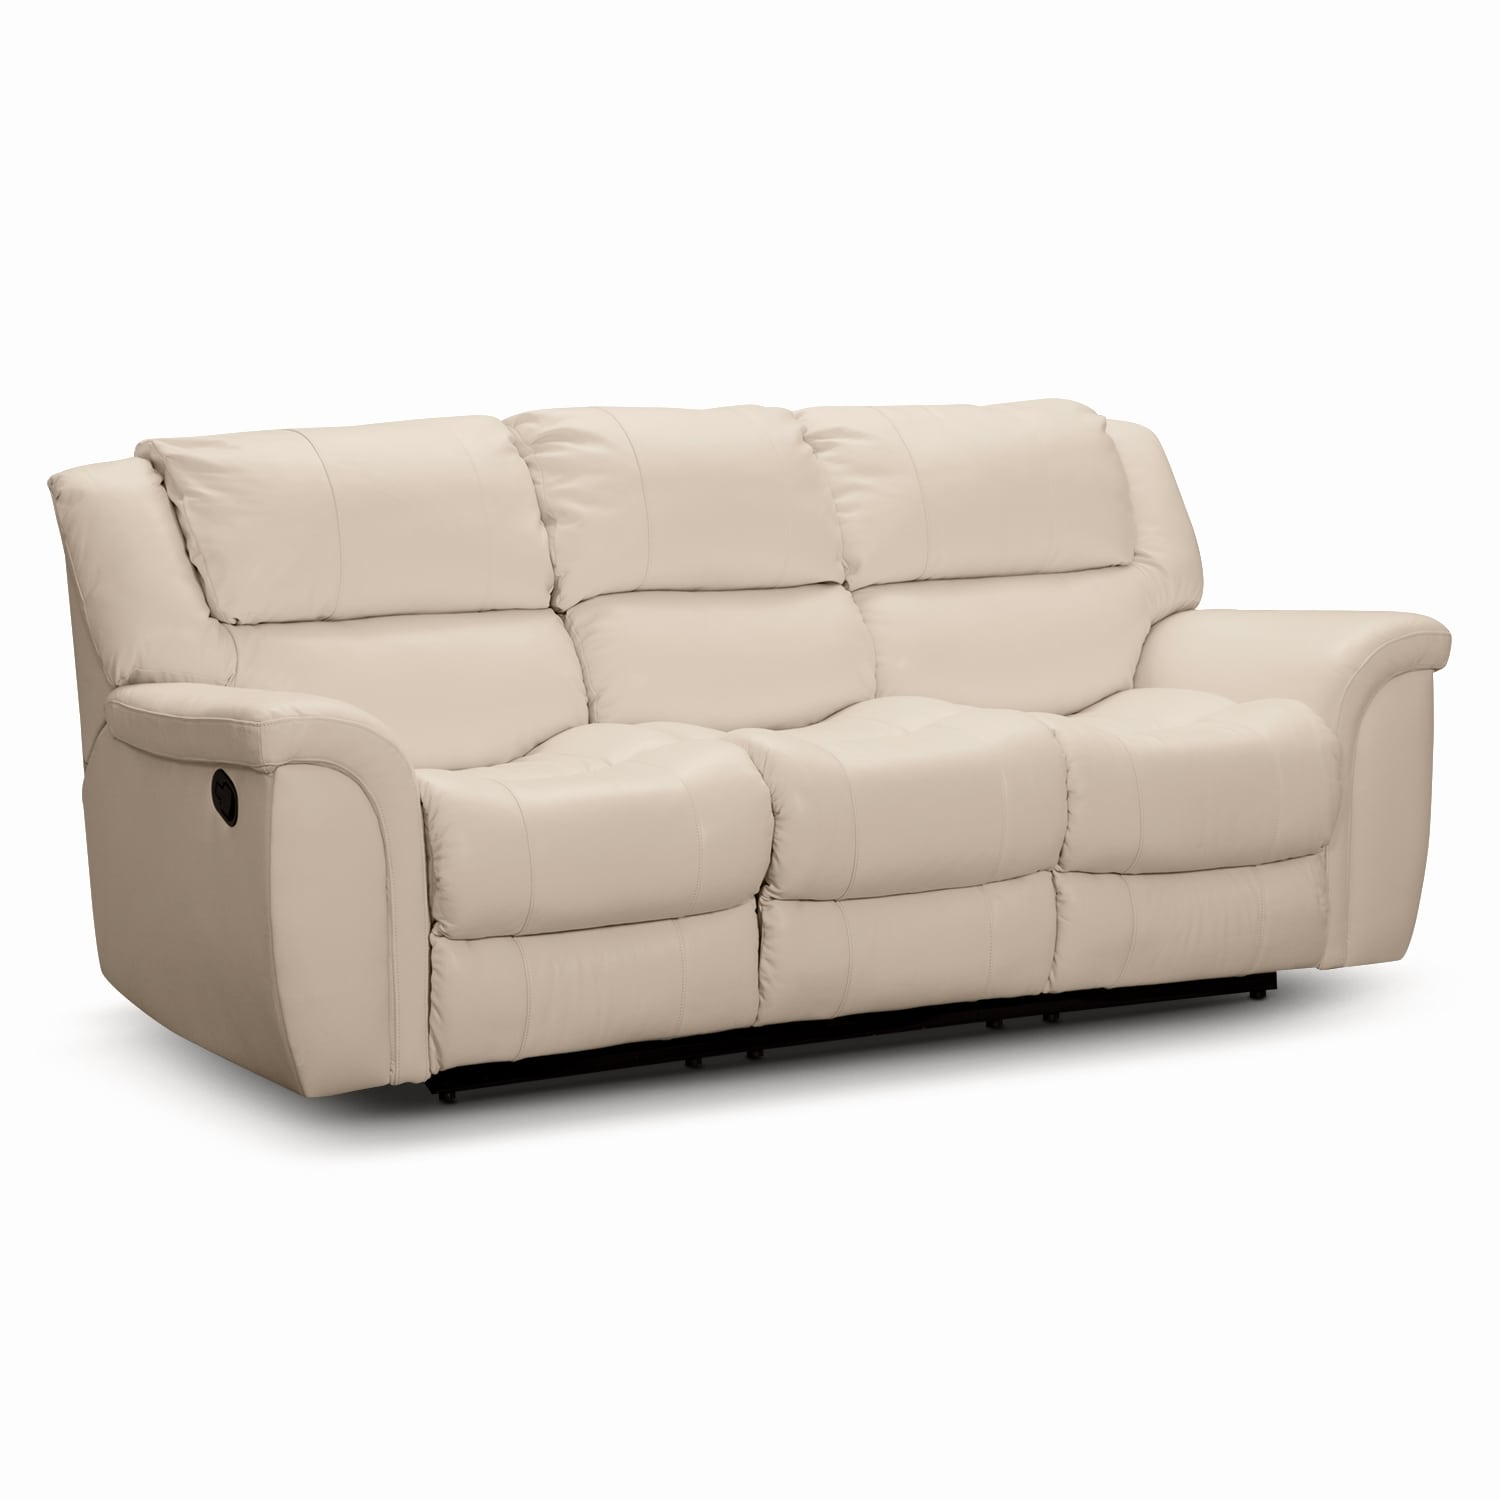 Living Room Furniture - Aquarius Dual Power Reclining Sofa